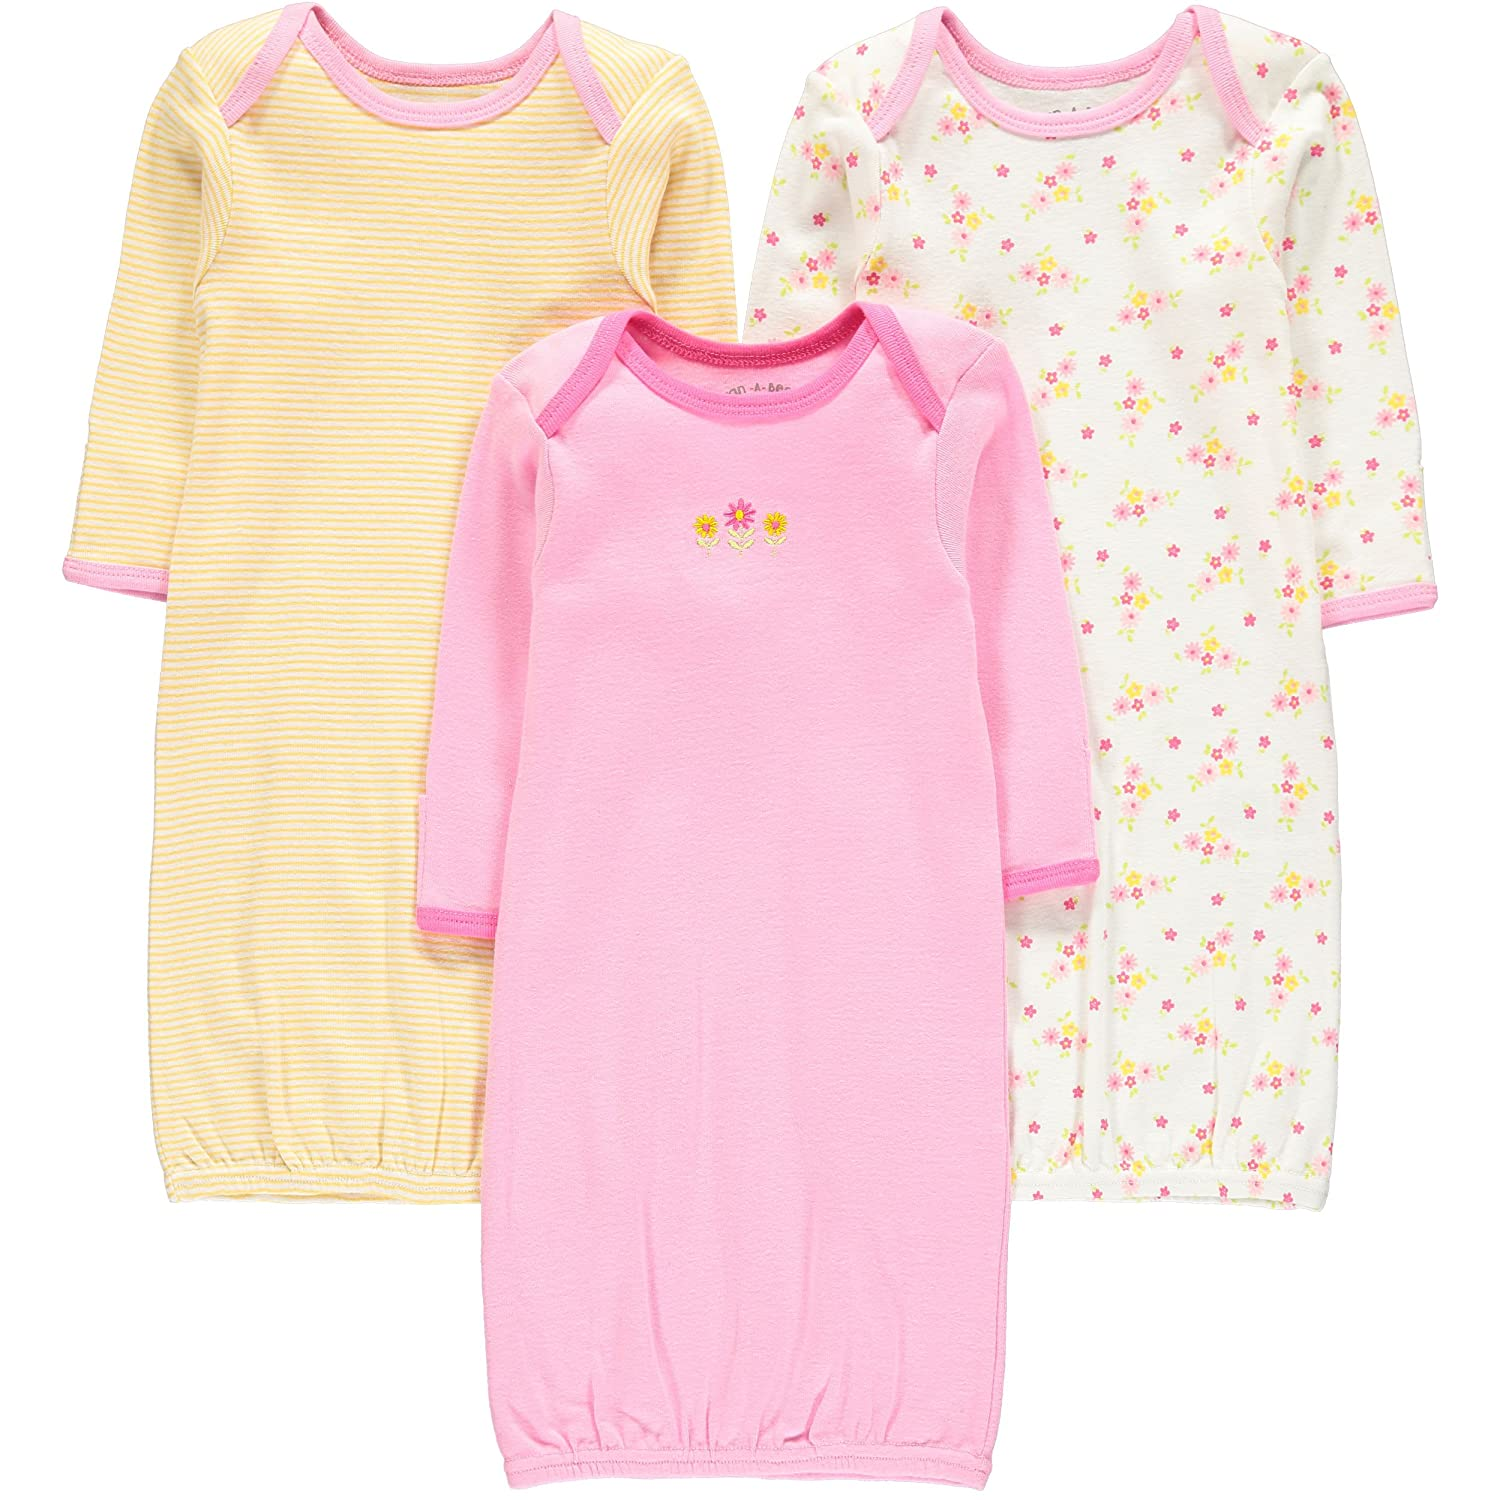 Wan-A-Beez Baby Boys' and Girls' 3 Pack Printed Baby Gowns WGNB0001